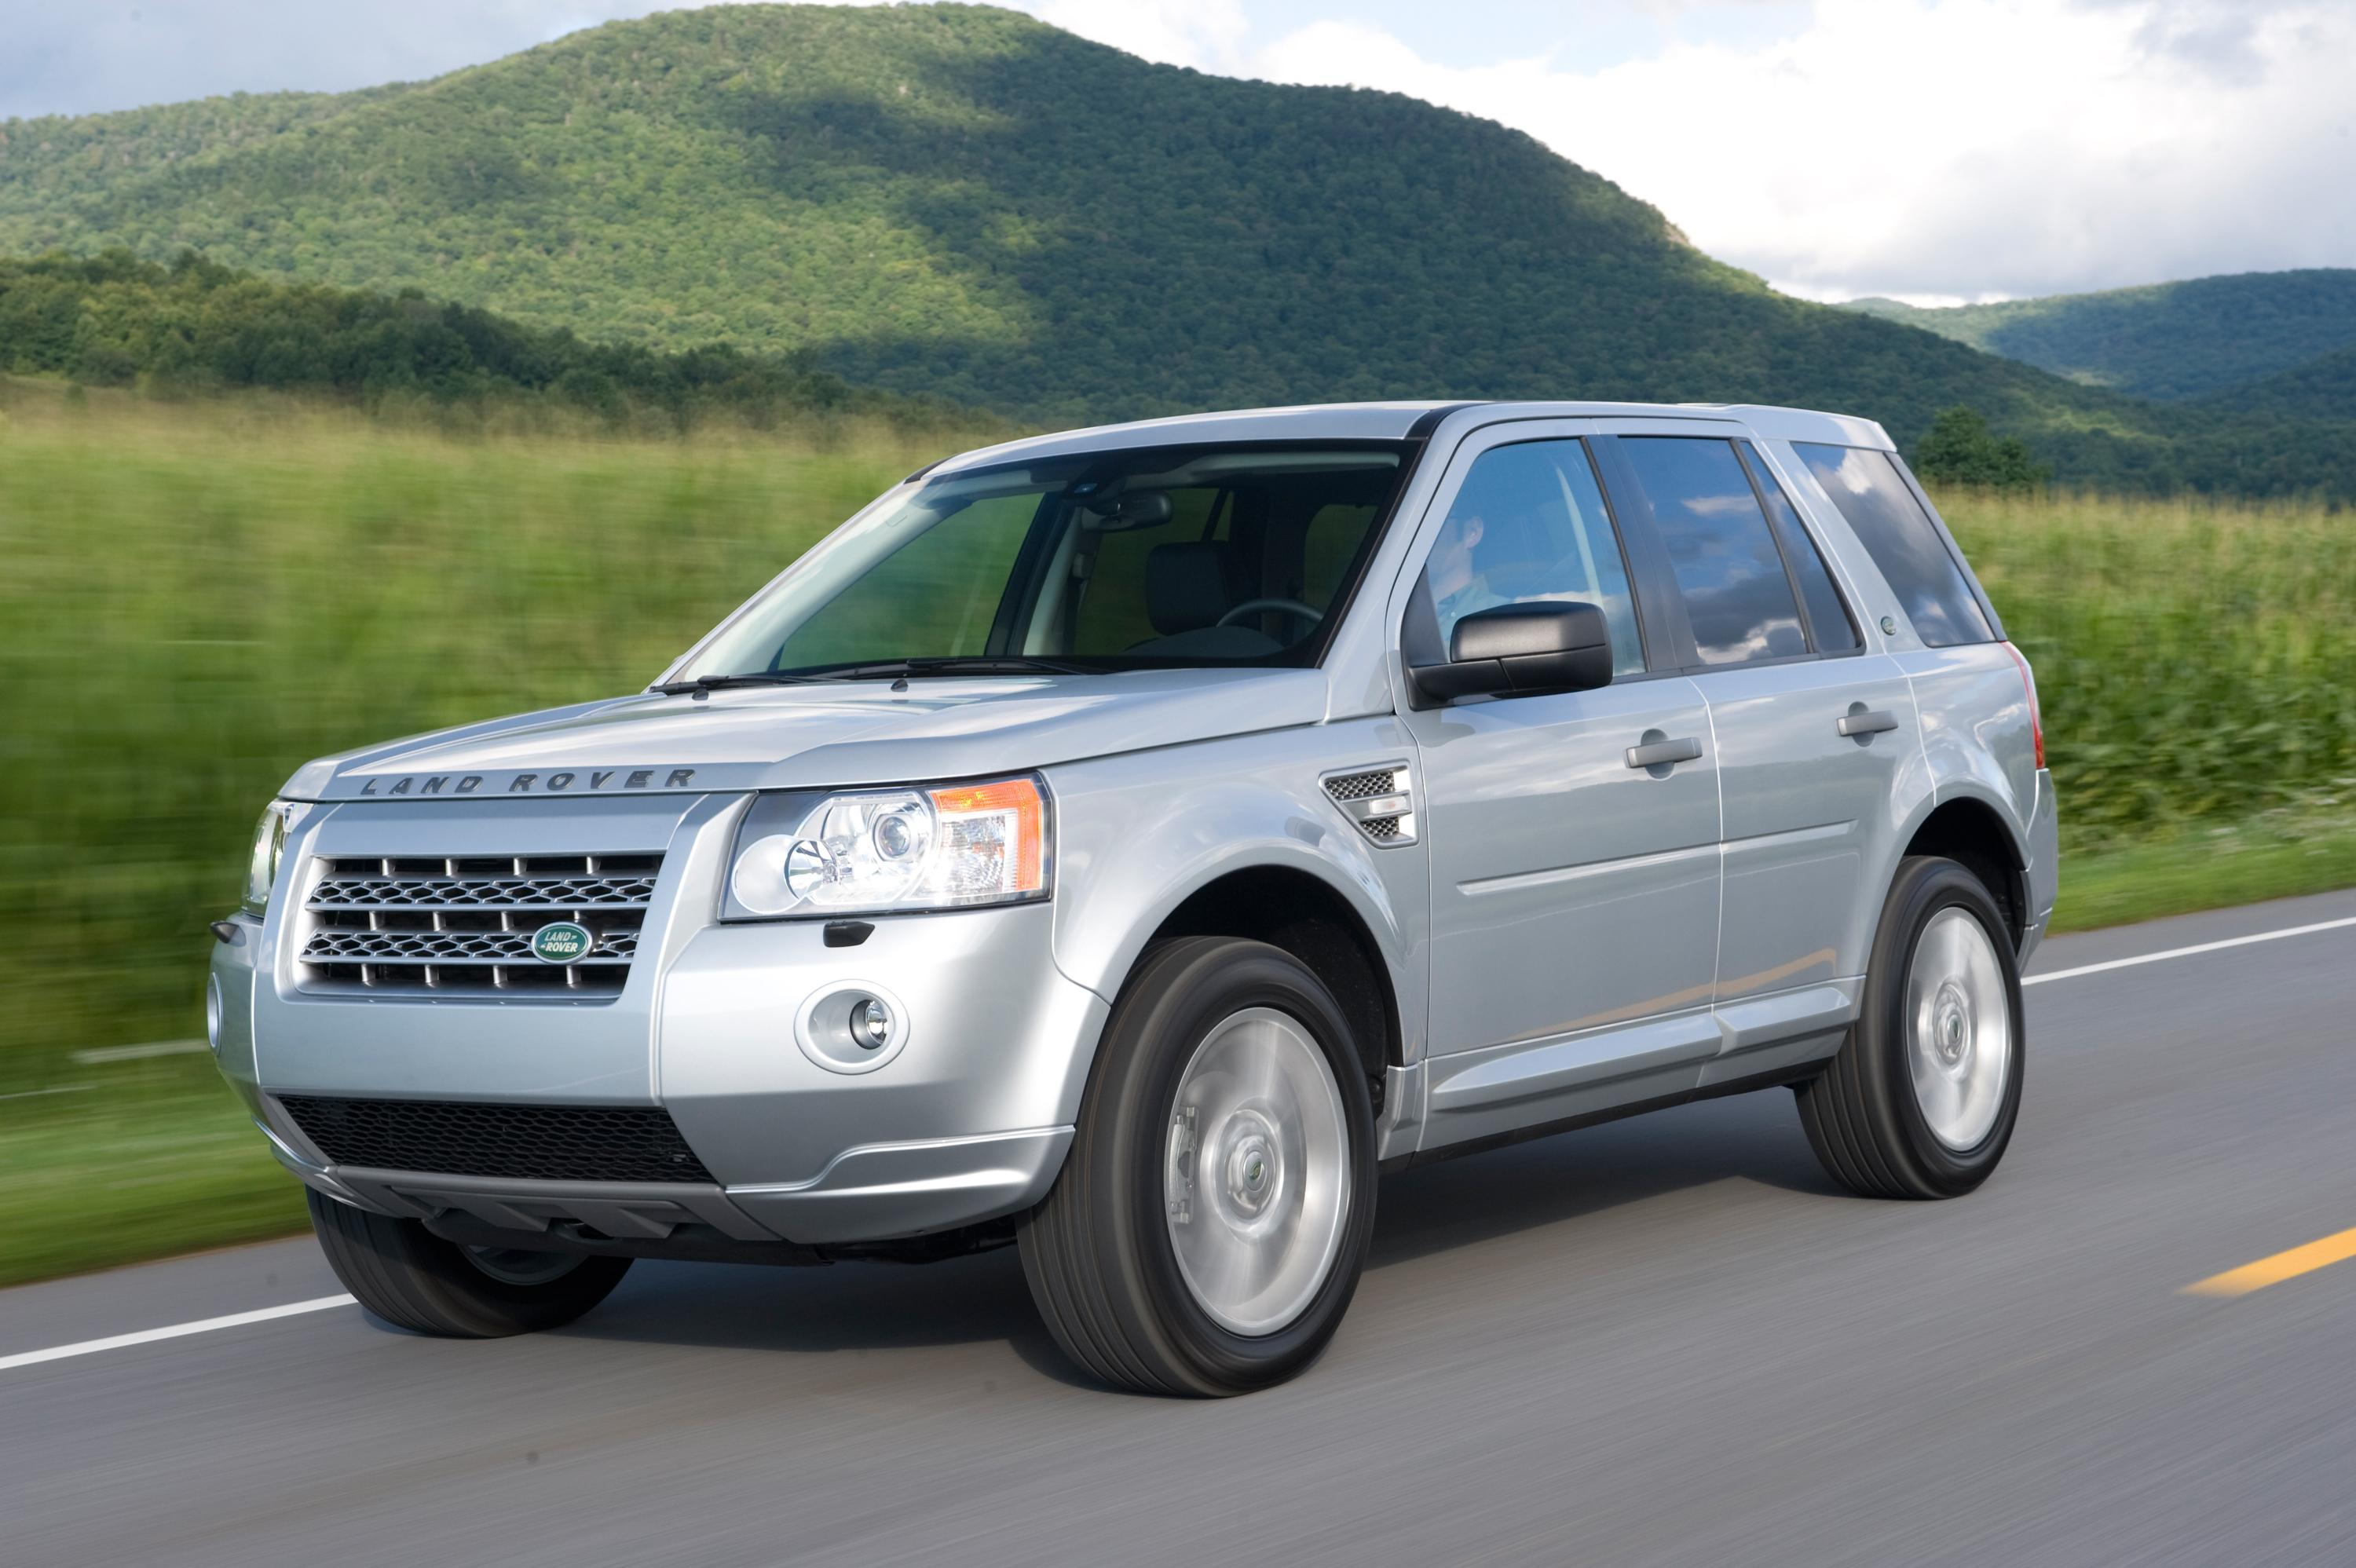 2009 Land Rover LR2 HSE Picture